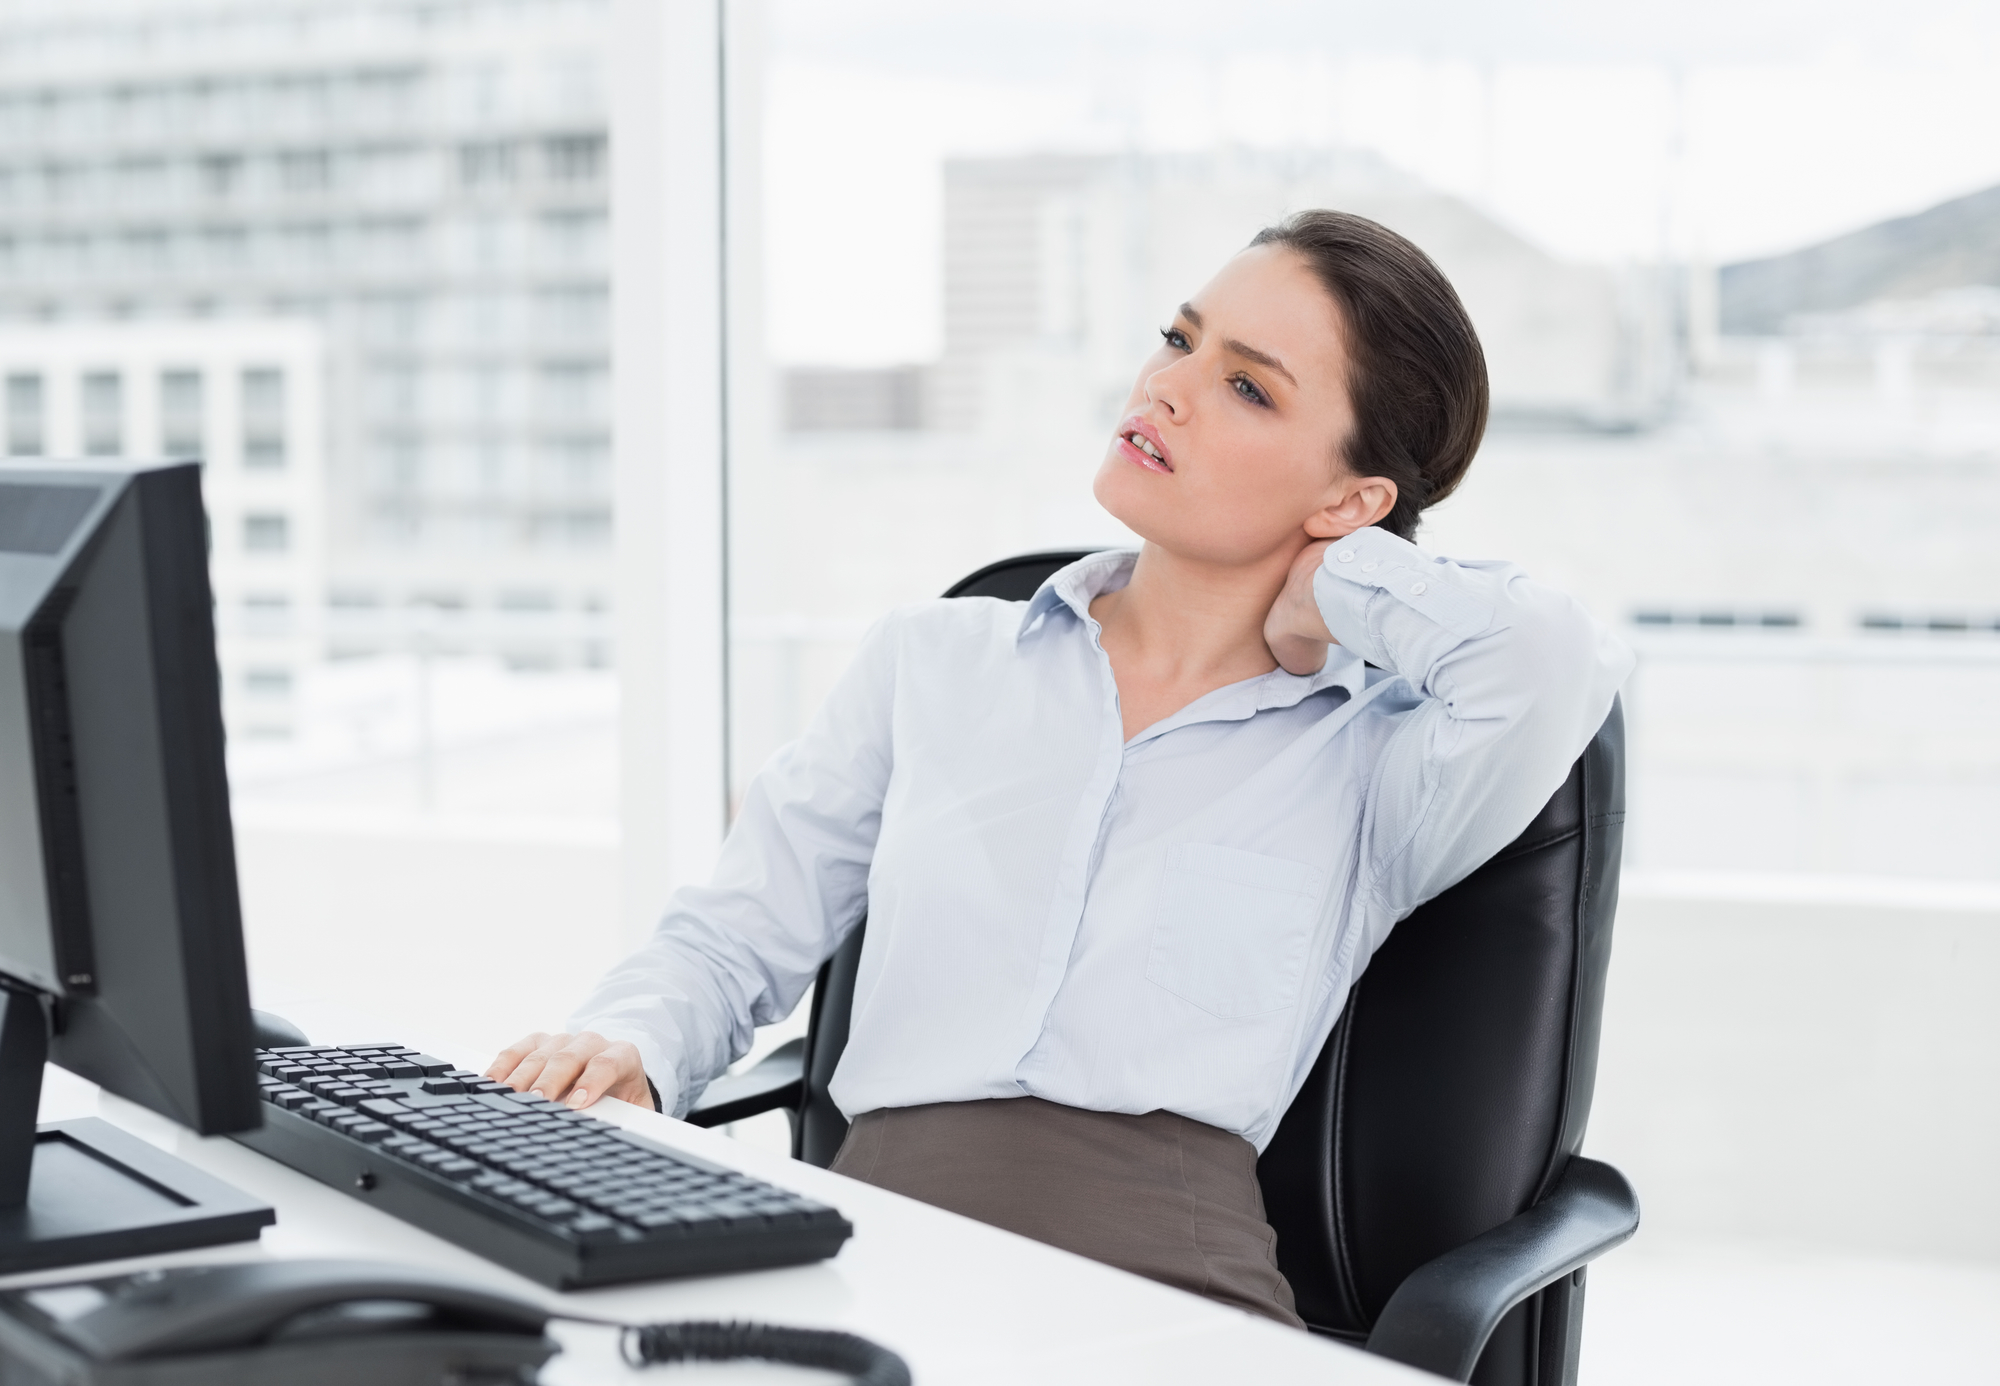 Young businesswoman with neck pain sitting at office desk